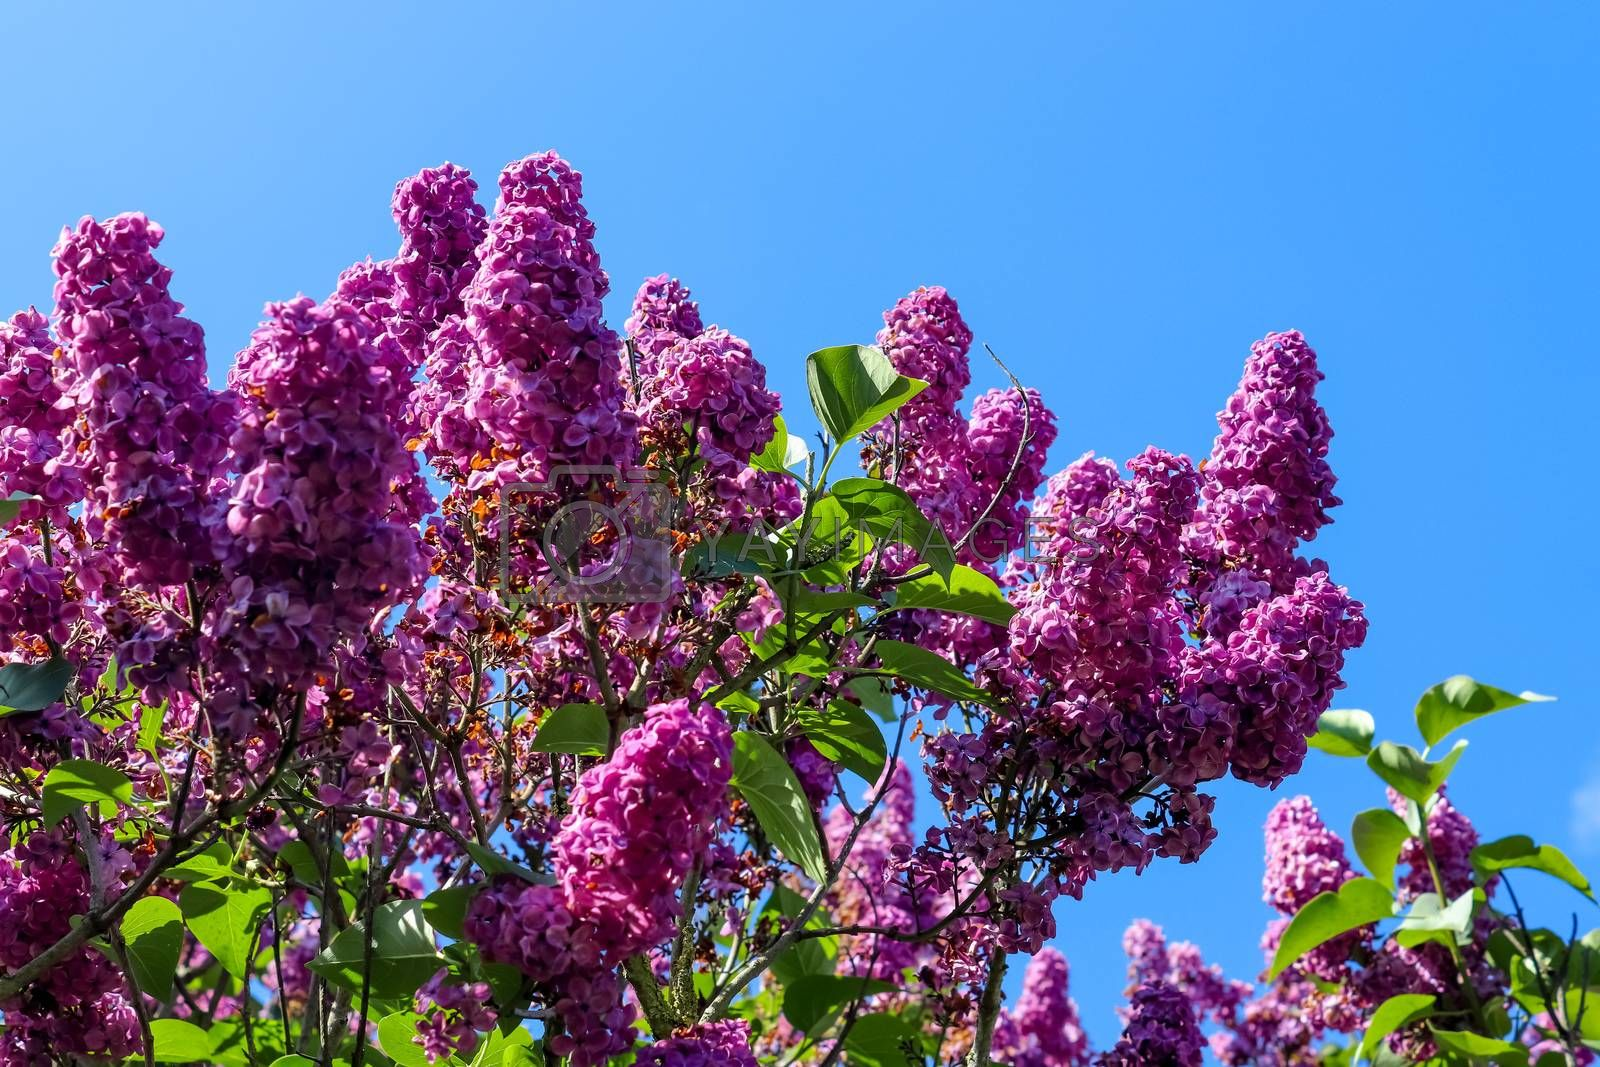 Lilac tree syringa vulgaris in front of a clear blue sky during  by MP_foto71